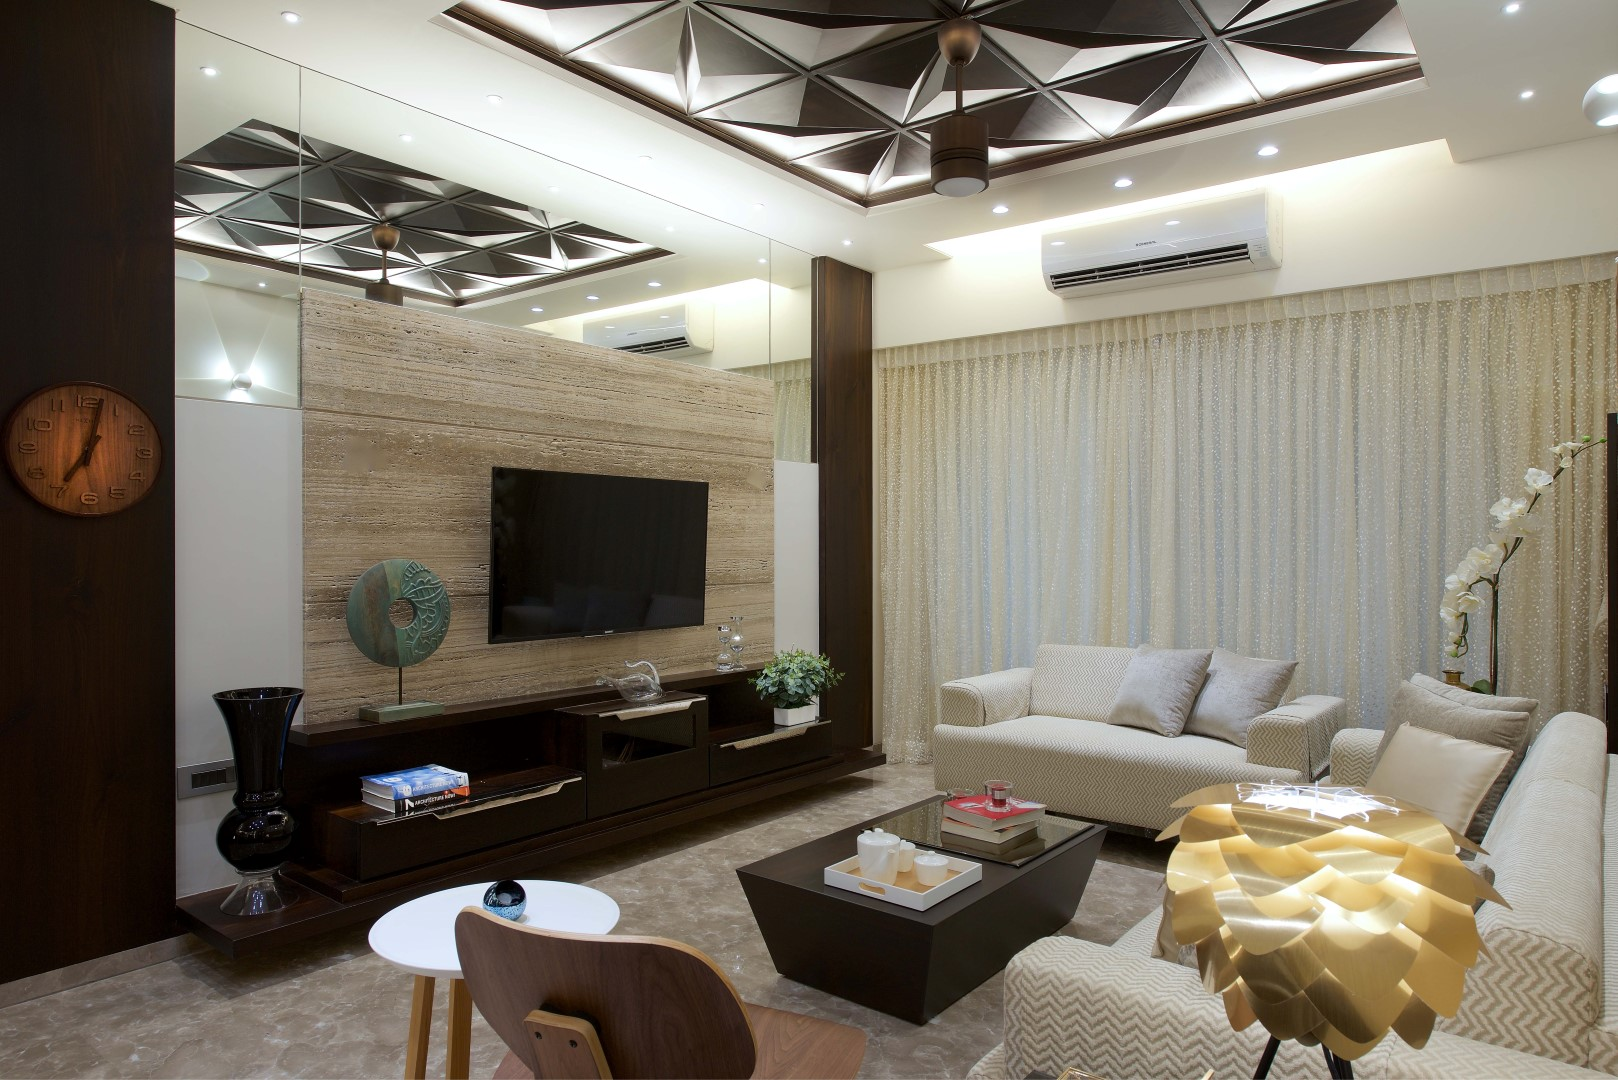 3 bhk apartment interiors at yari road amit shastri architects the architects diary - Apartment interior ...